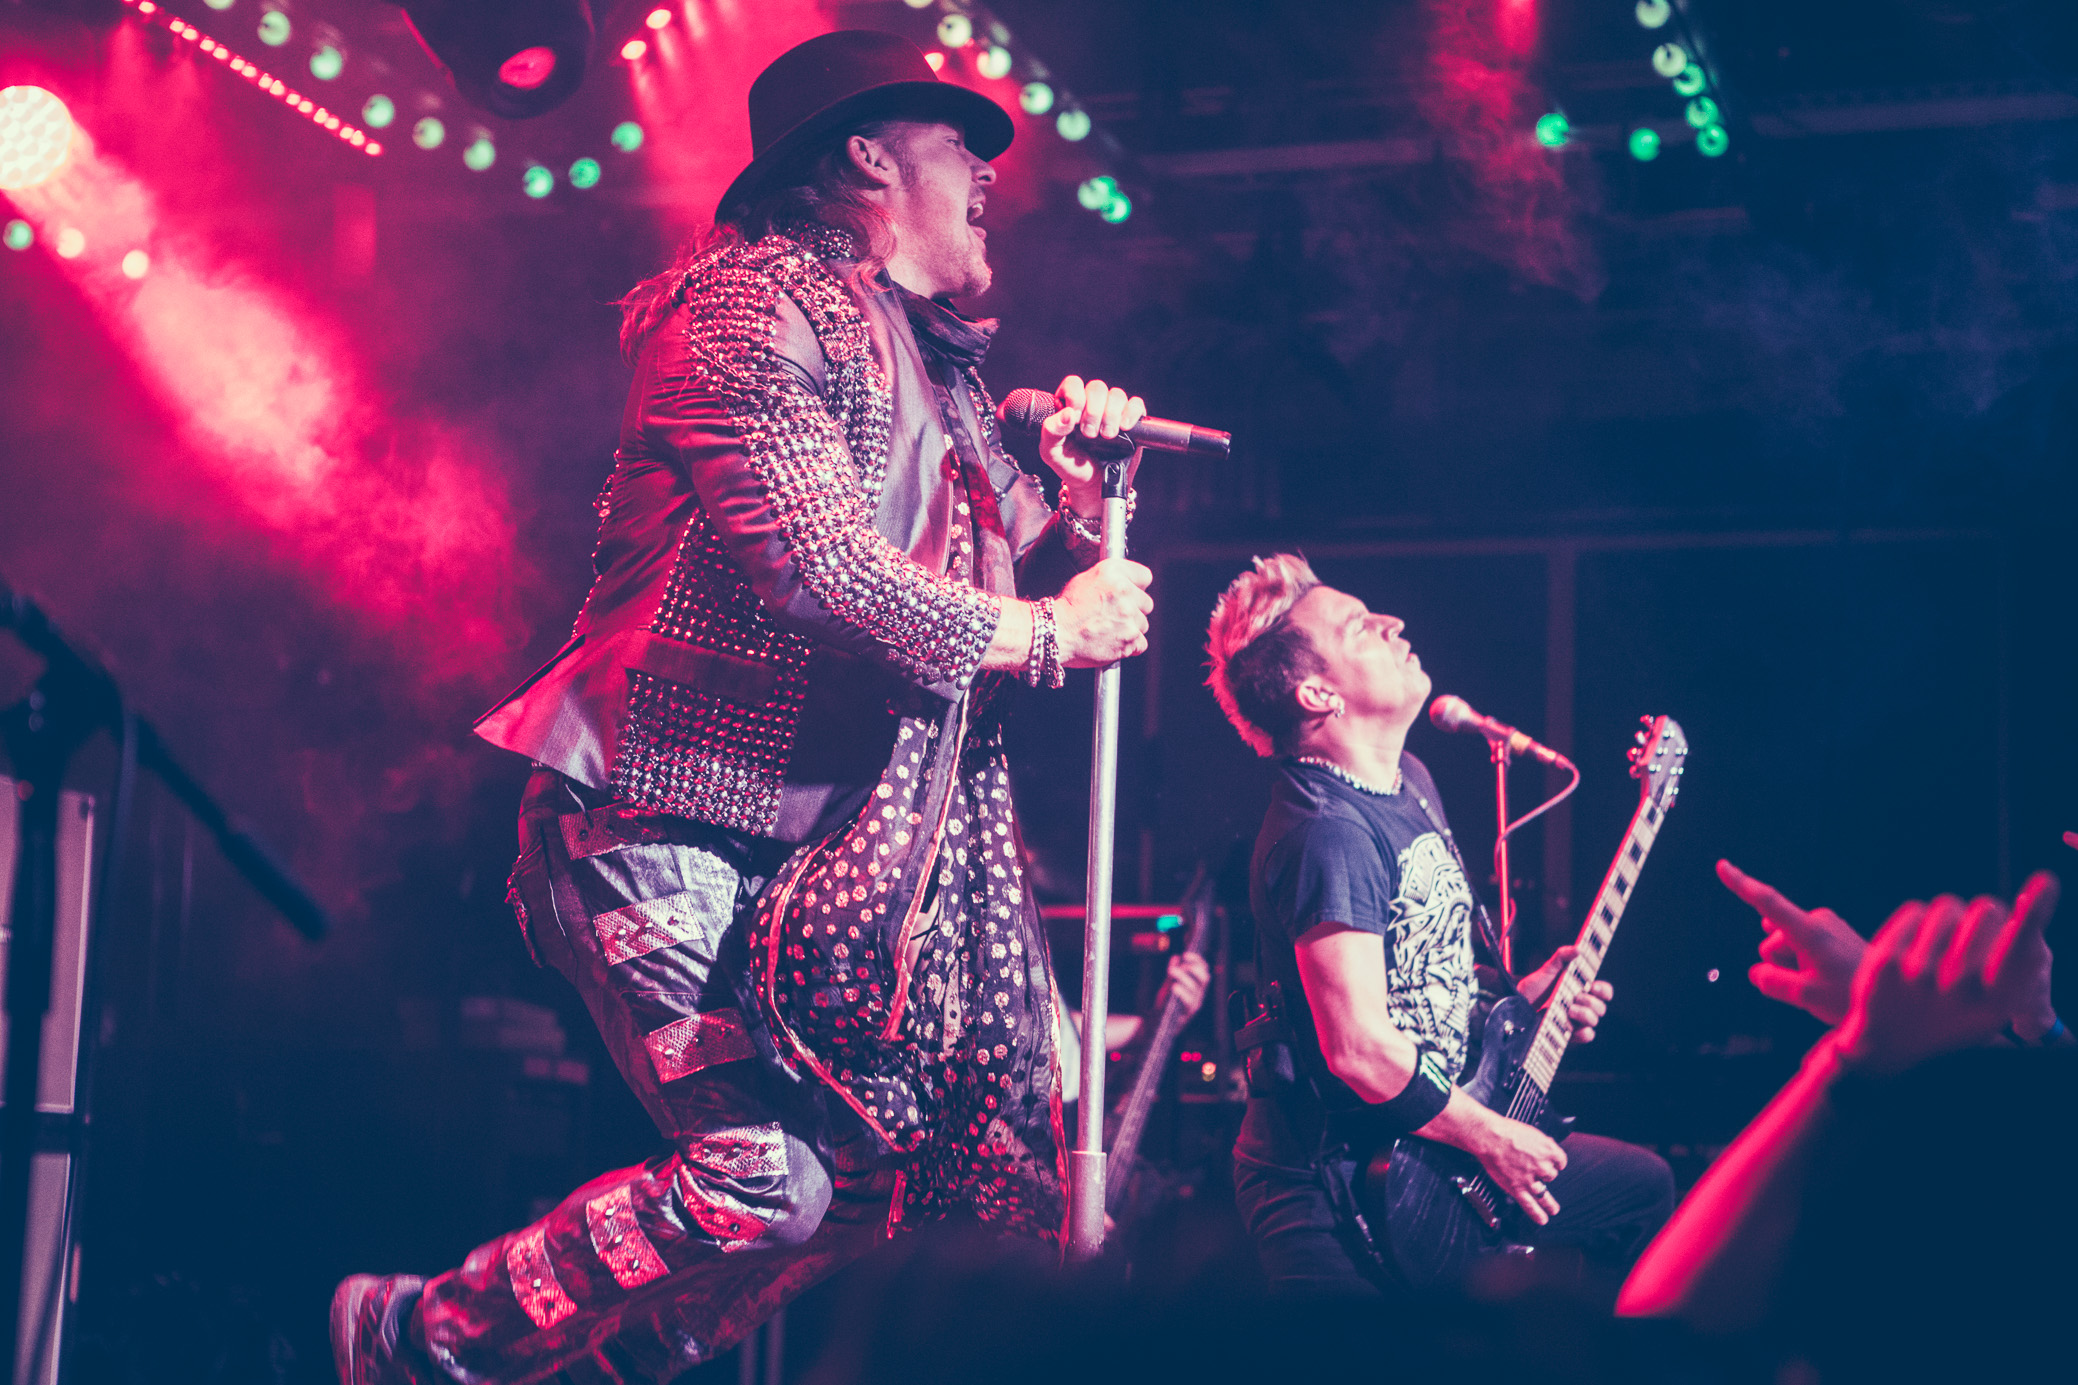 Chris Jericho and Billy Grey of Fozzy perform in concert at Saturn Birmingham in Birmingham, Alabama on August 25th, 2018. (Photo by David A. Smith/DSmithScenes)